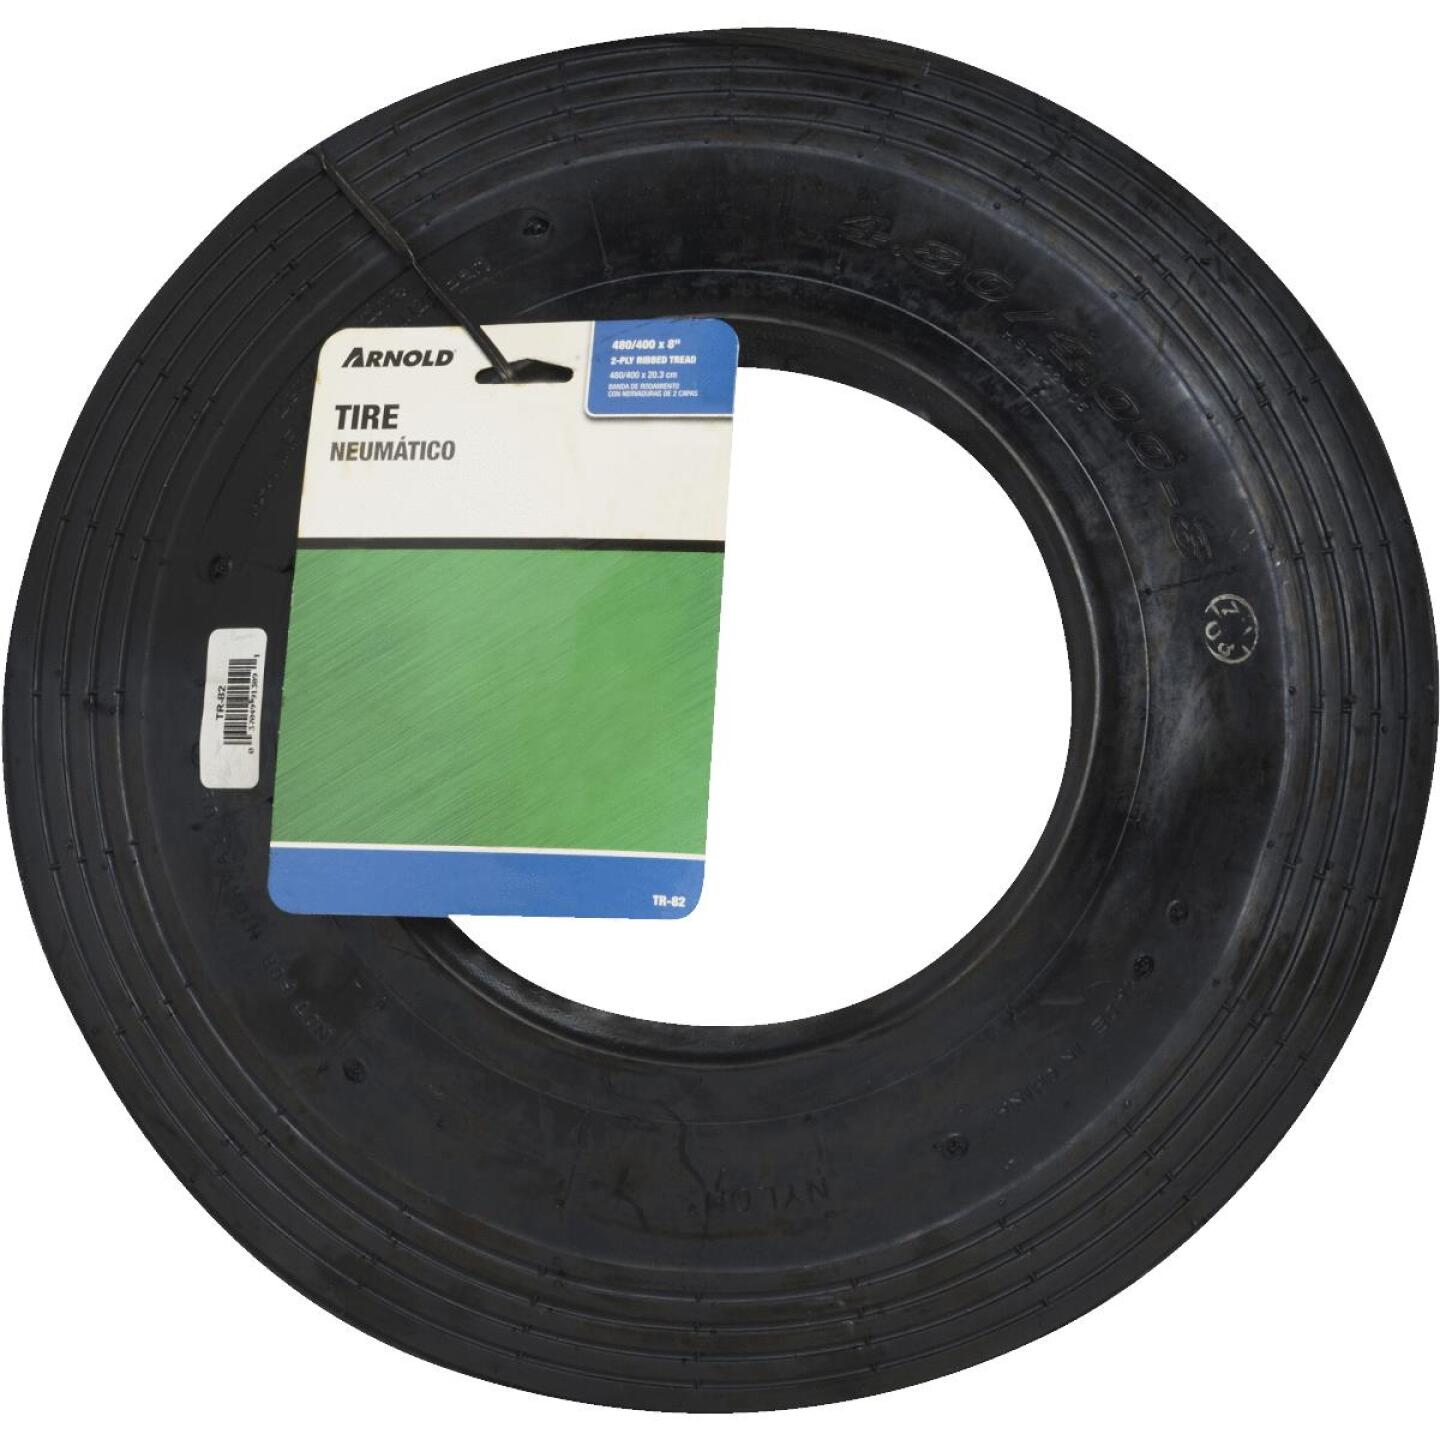 Arnold 480/400 x 8 In. Off-Road Replacement Tire Image 2